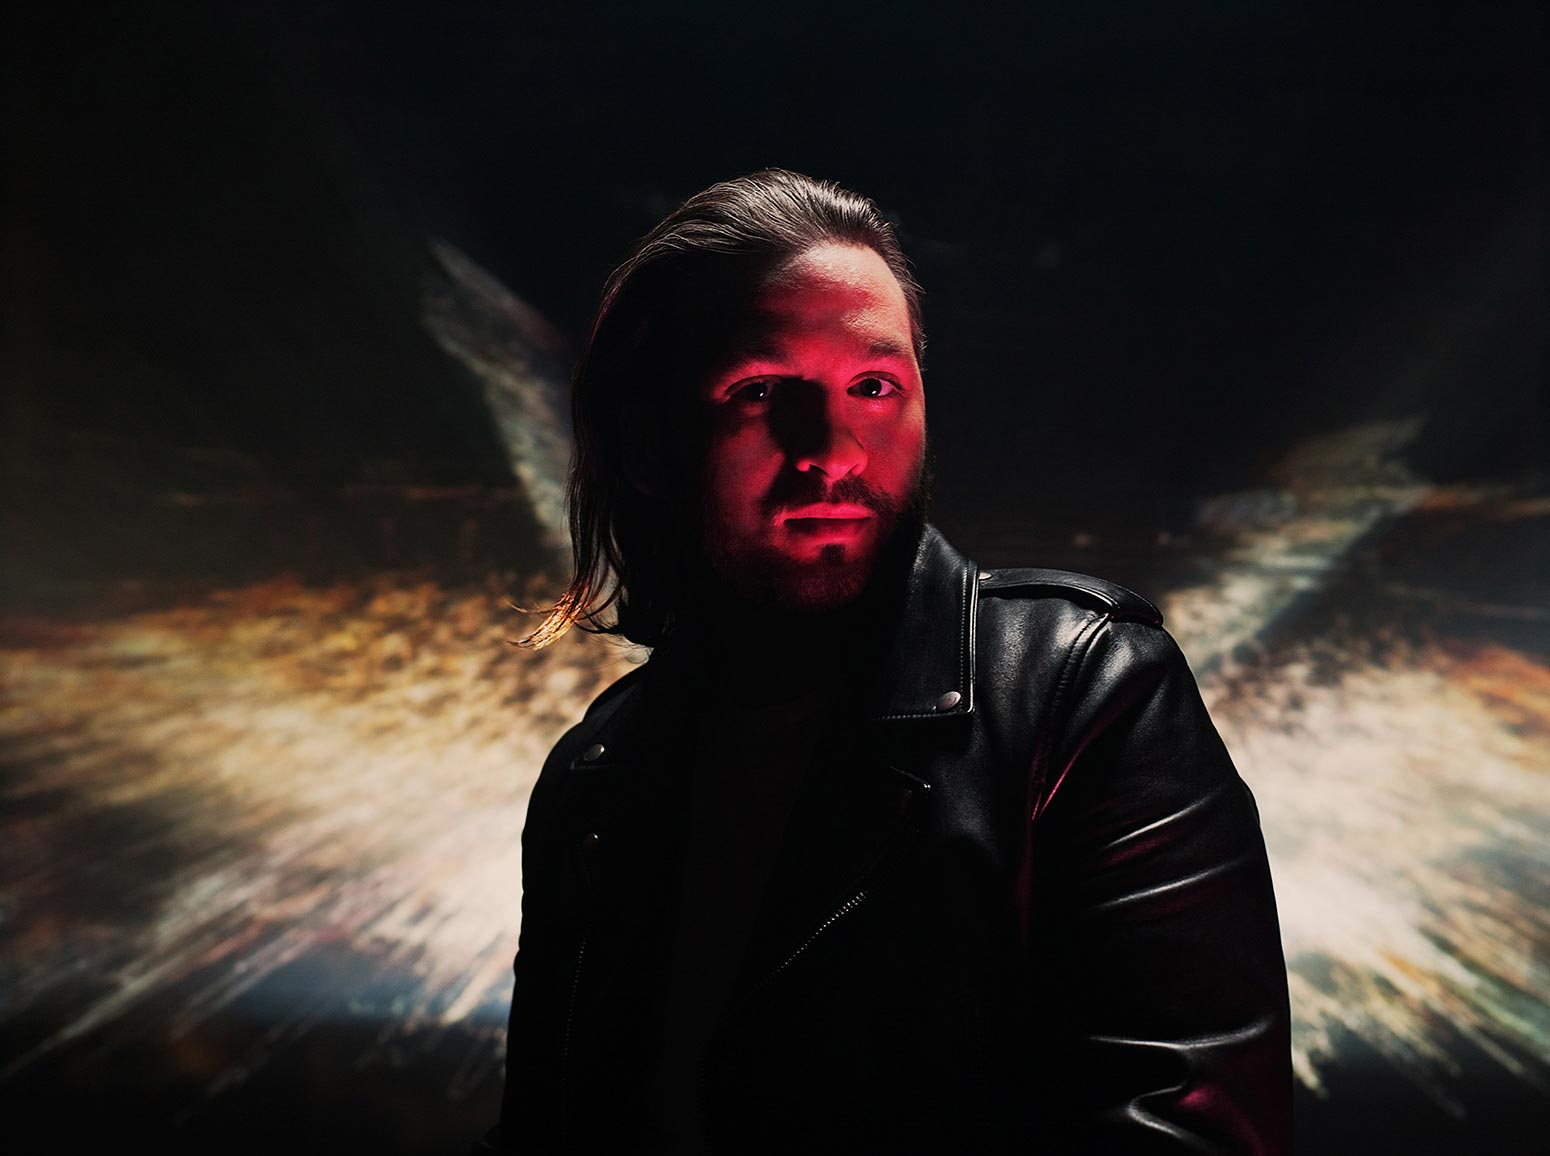 Steve Angello's 'Wild Youth' Album: A piece of art that'll gain more value with the passage of time